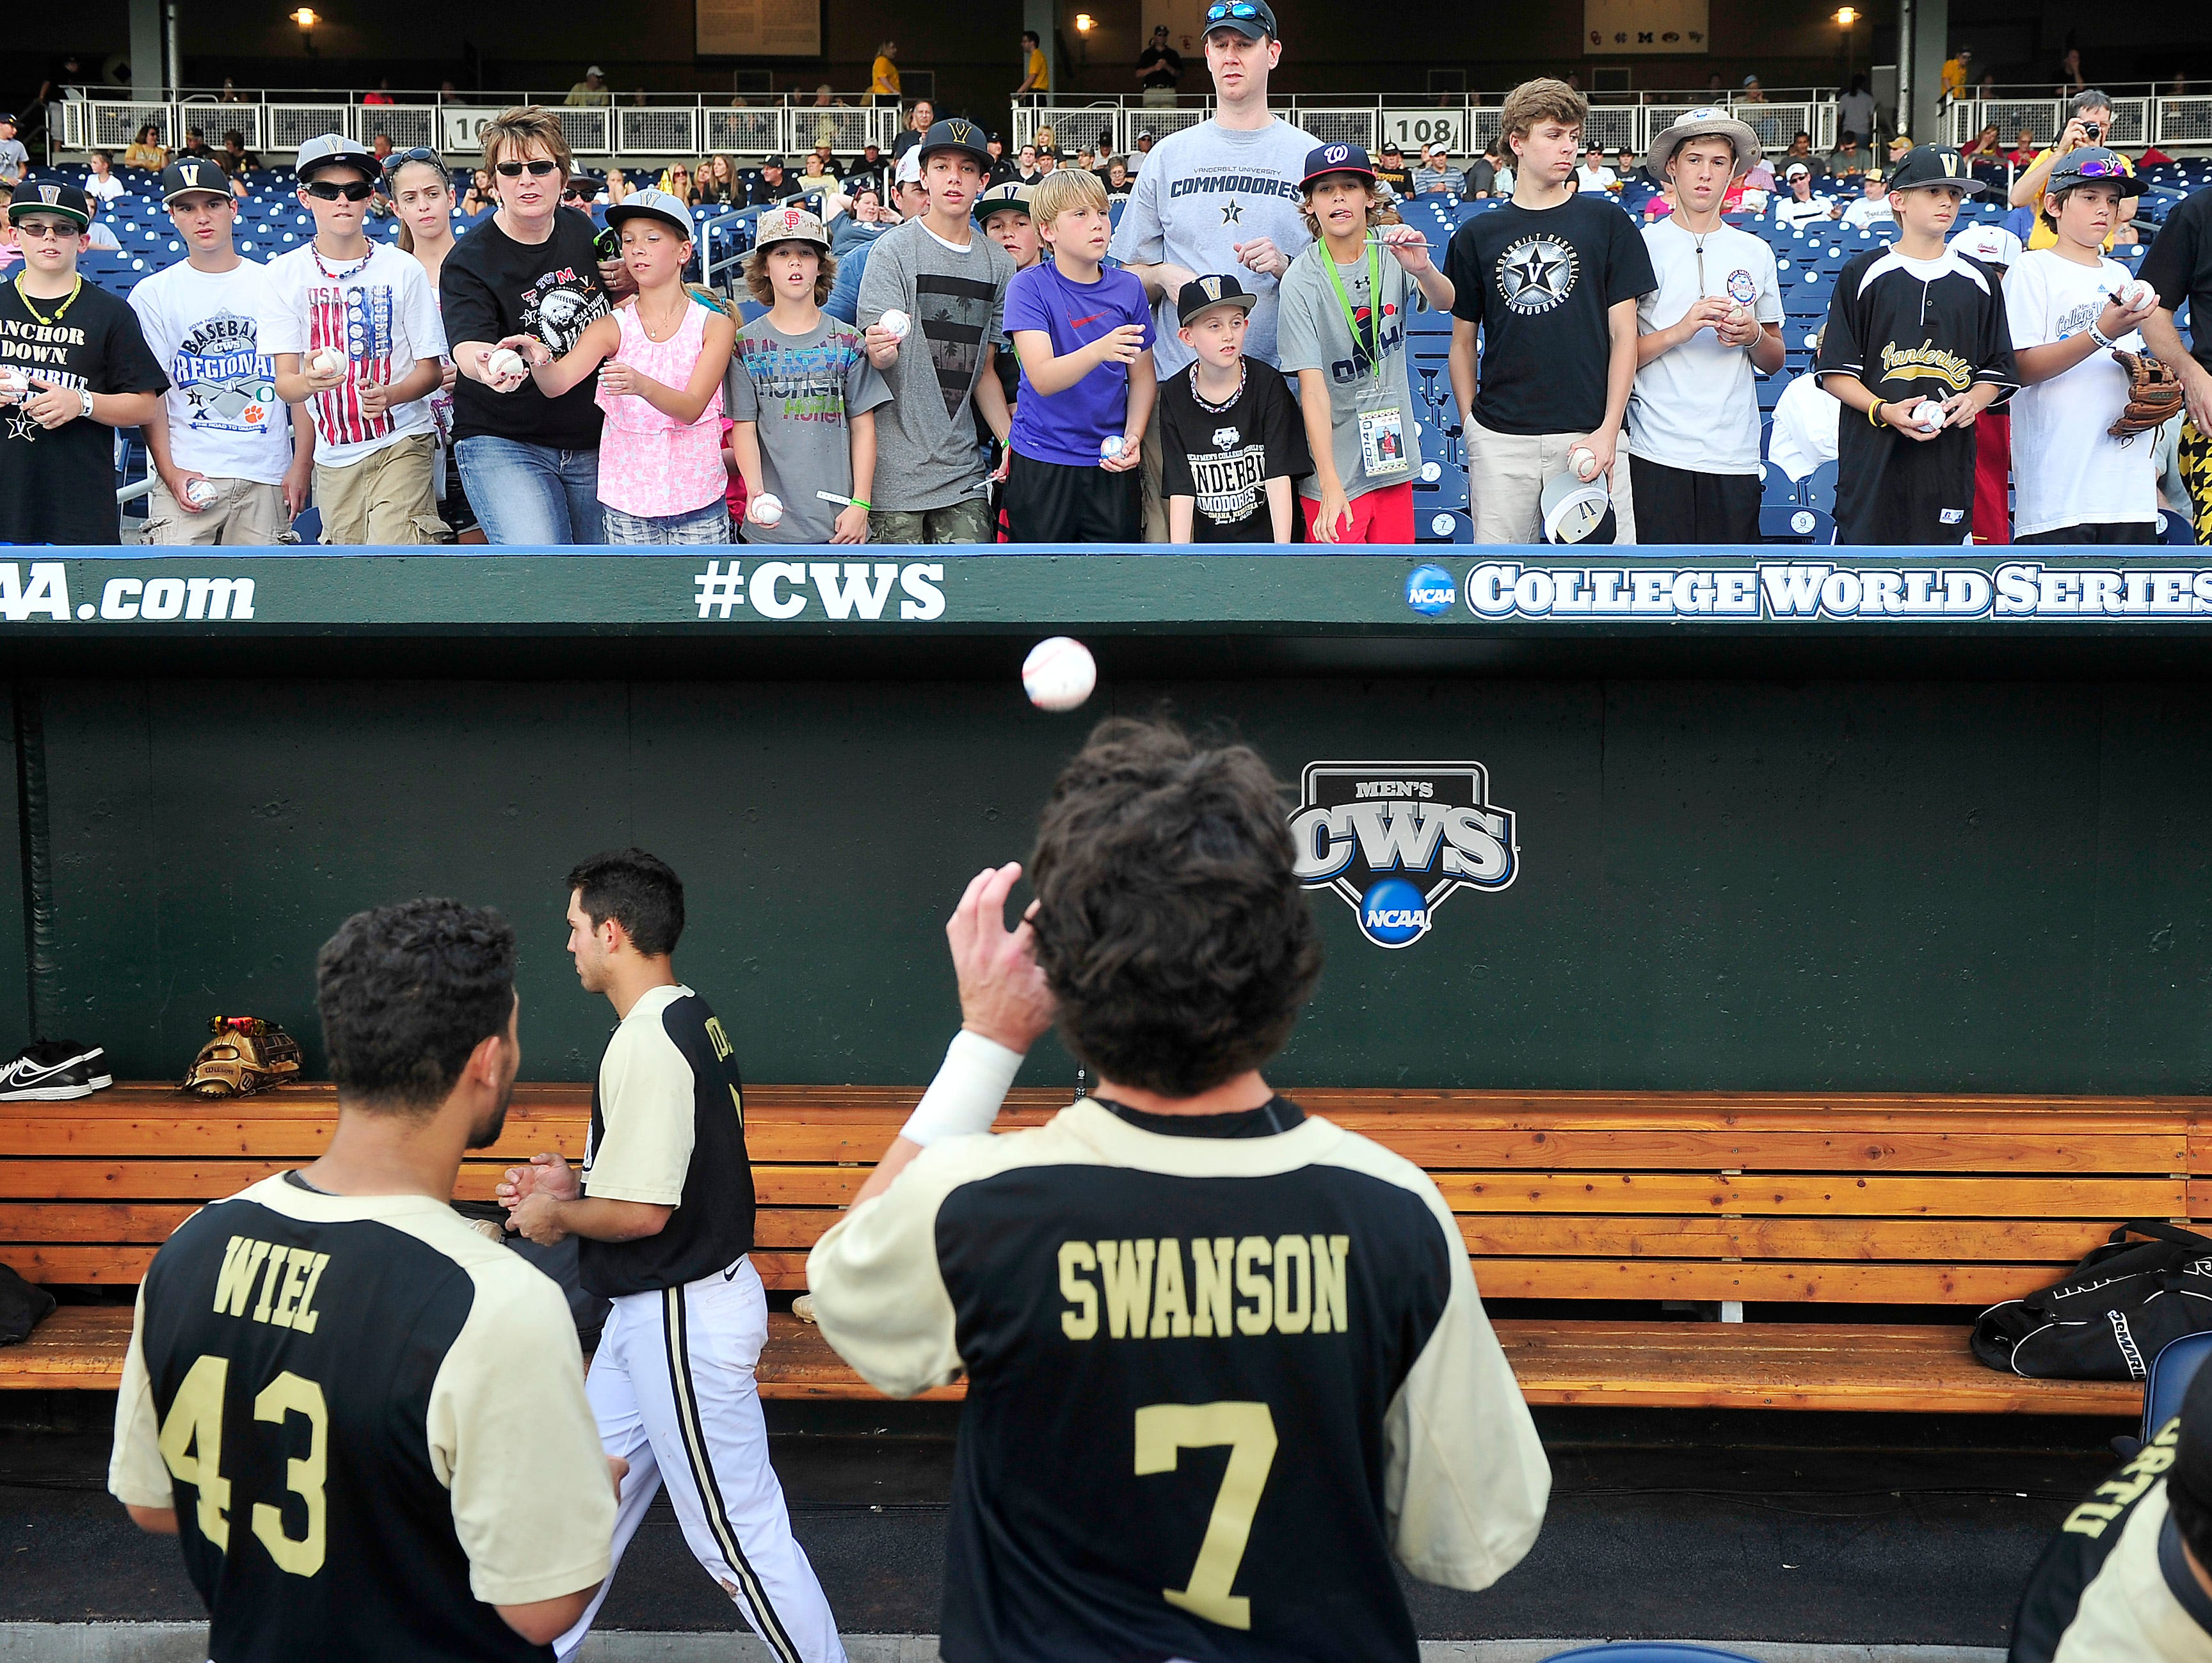 Vanderbilt fans try to get autographs from players prior to the game 3 against Virginia at the College World Series at TD Ameritrade Park in Omaha, Neb., Wednesday, June 25, 2014.